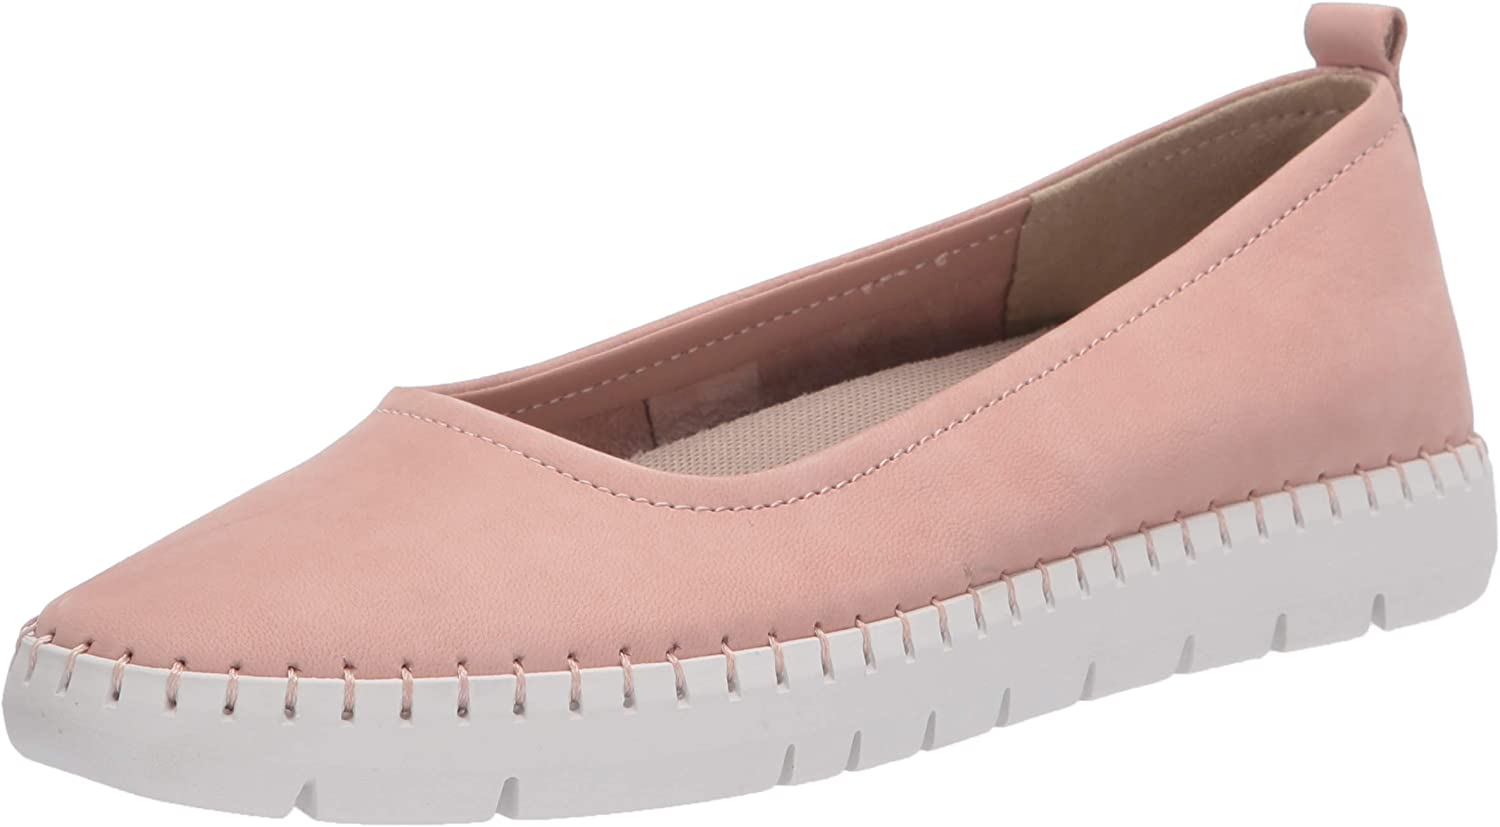 Naturalizer Classic El Paso Mall Women's Dolly Flat Ballet